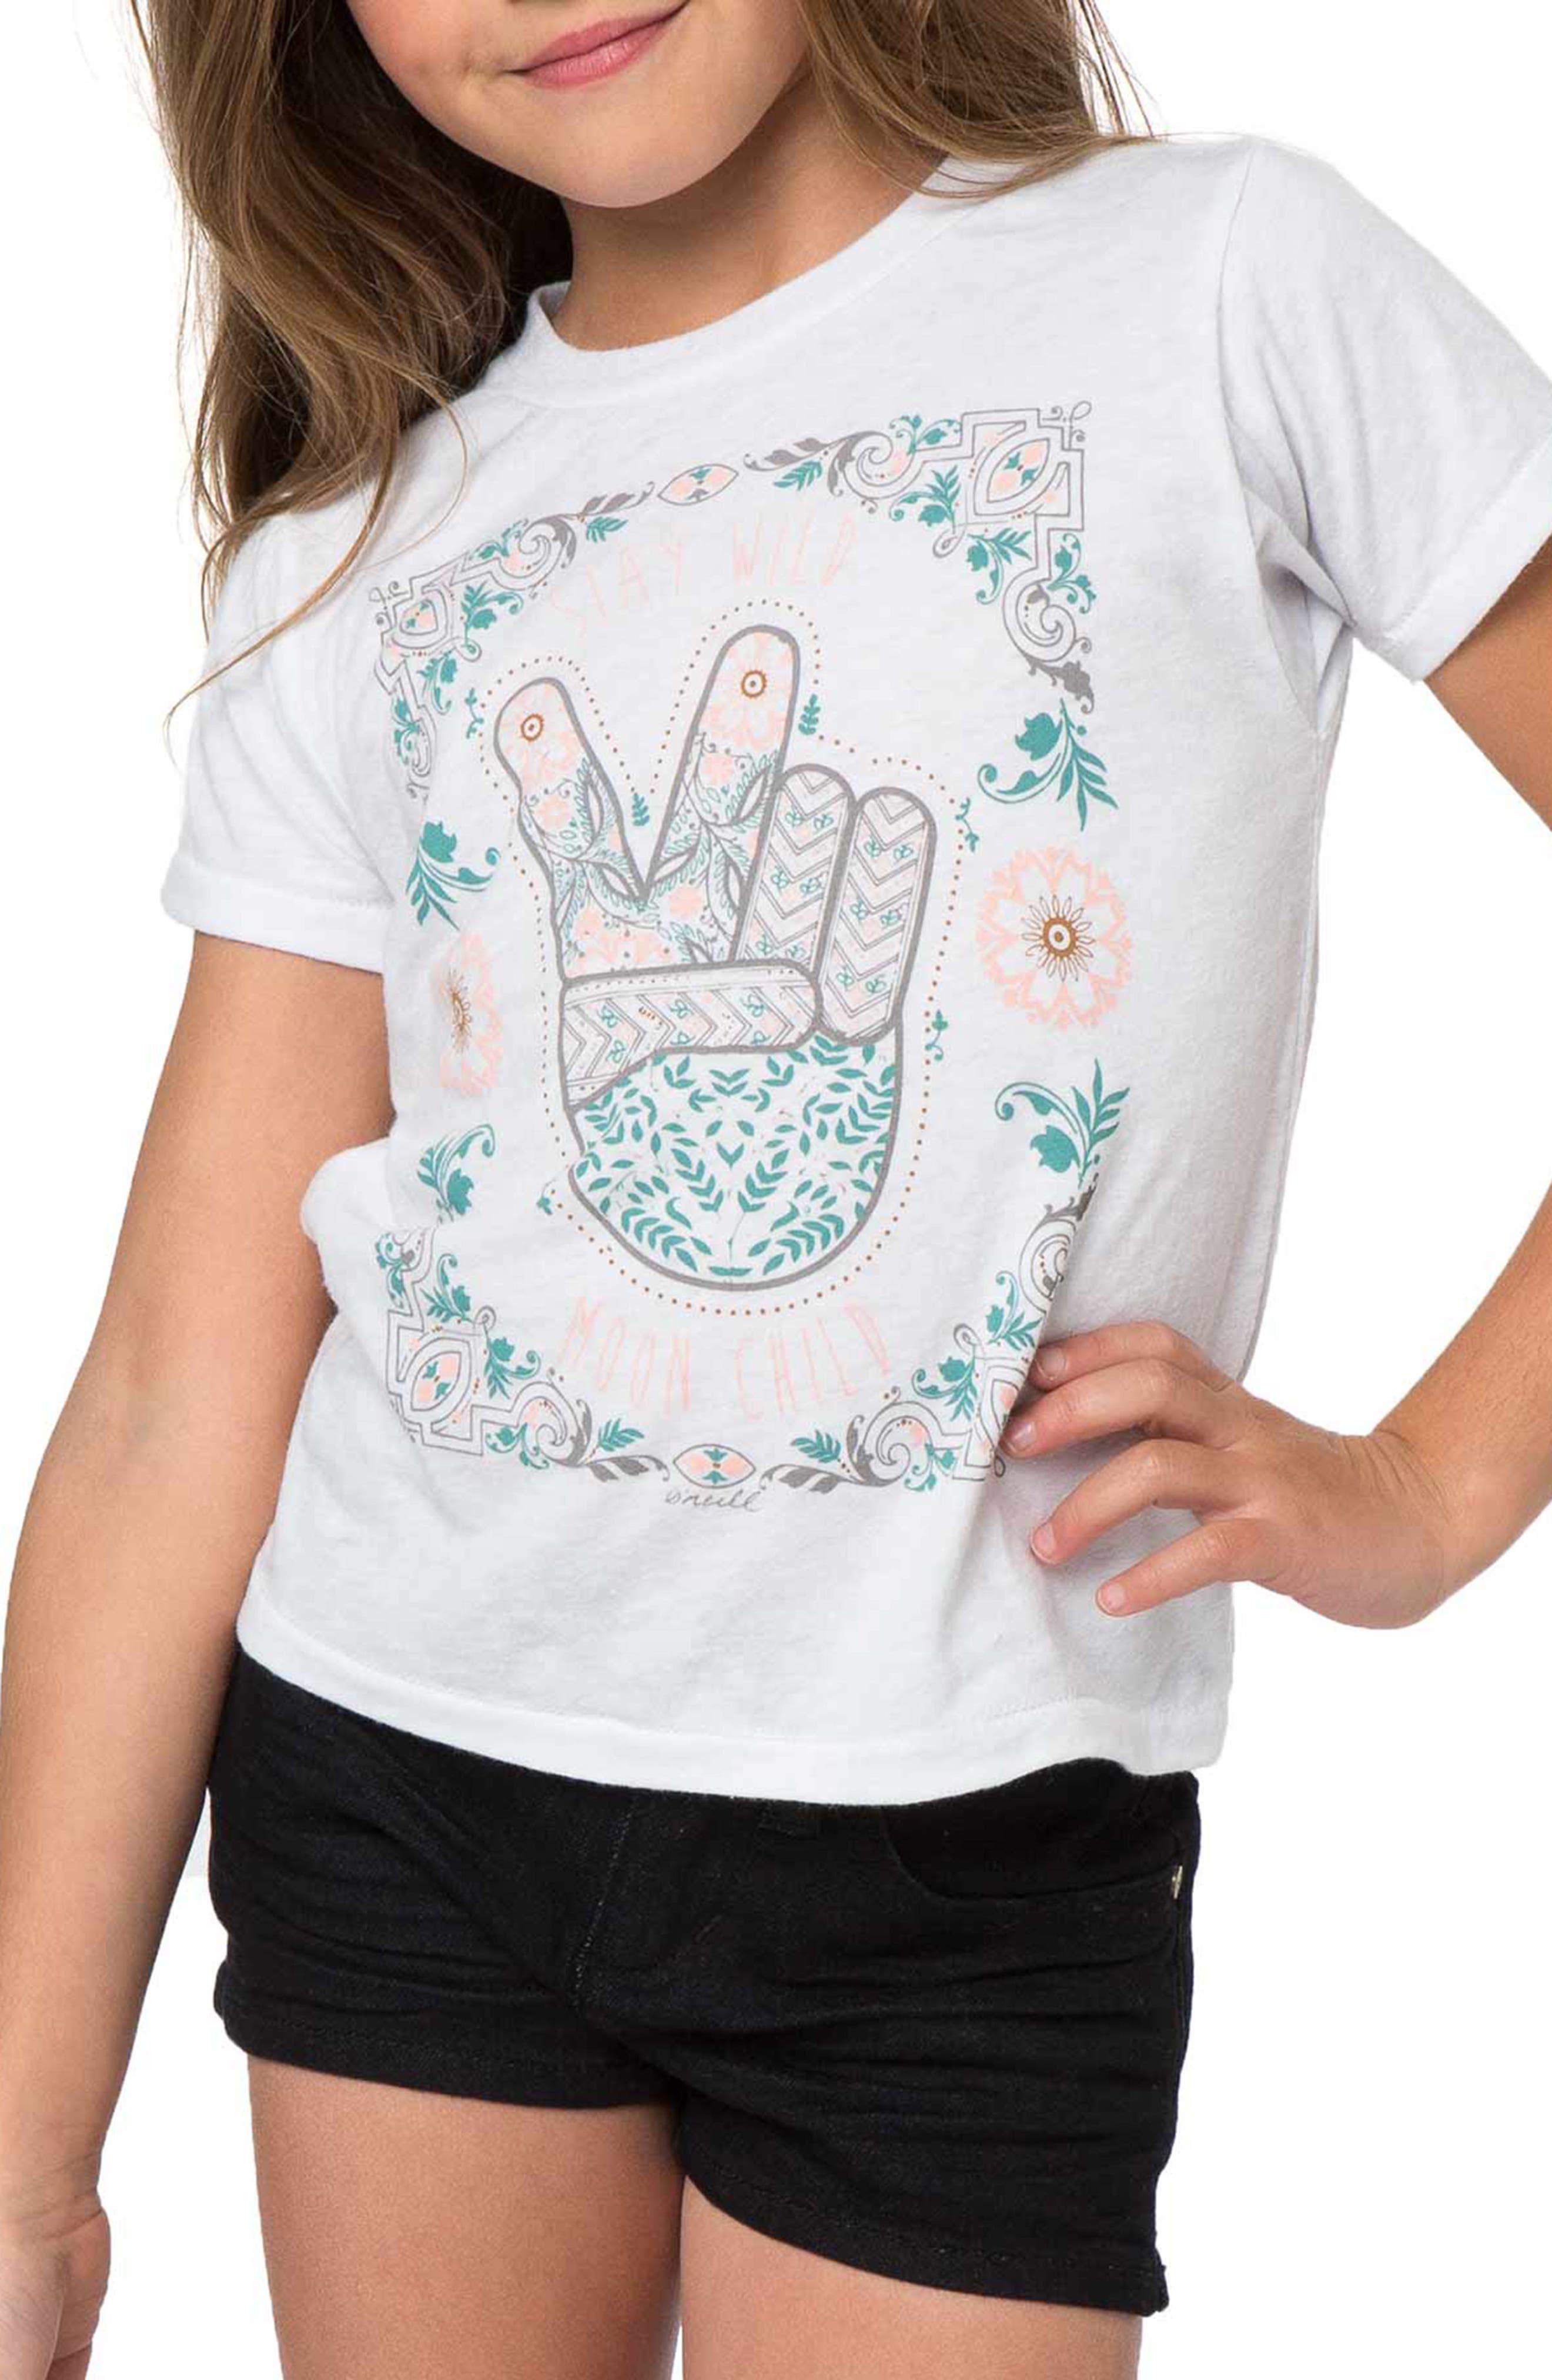 Alternate Image 1 Selected - O'Neill Stay Wild Moon Child Graphic Print Tee (Toddler Girls & Little Girls)